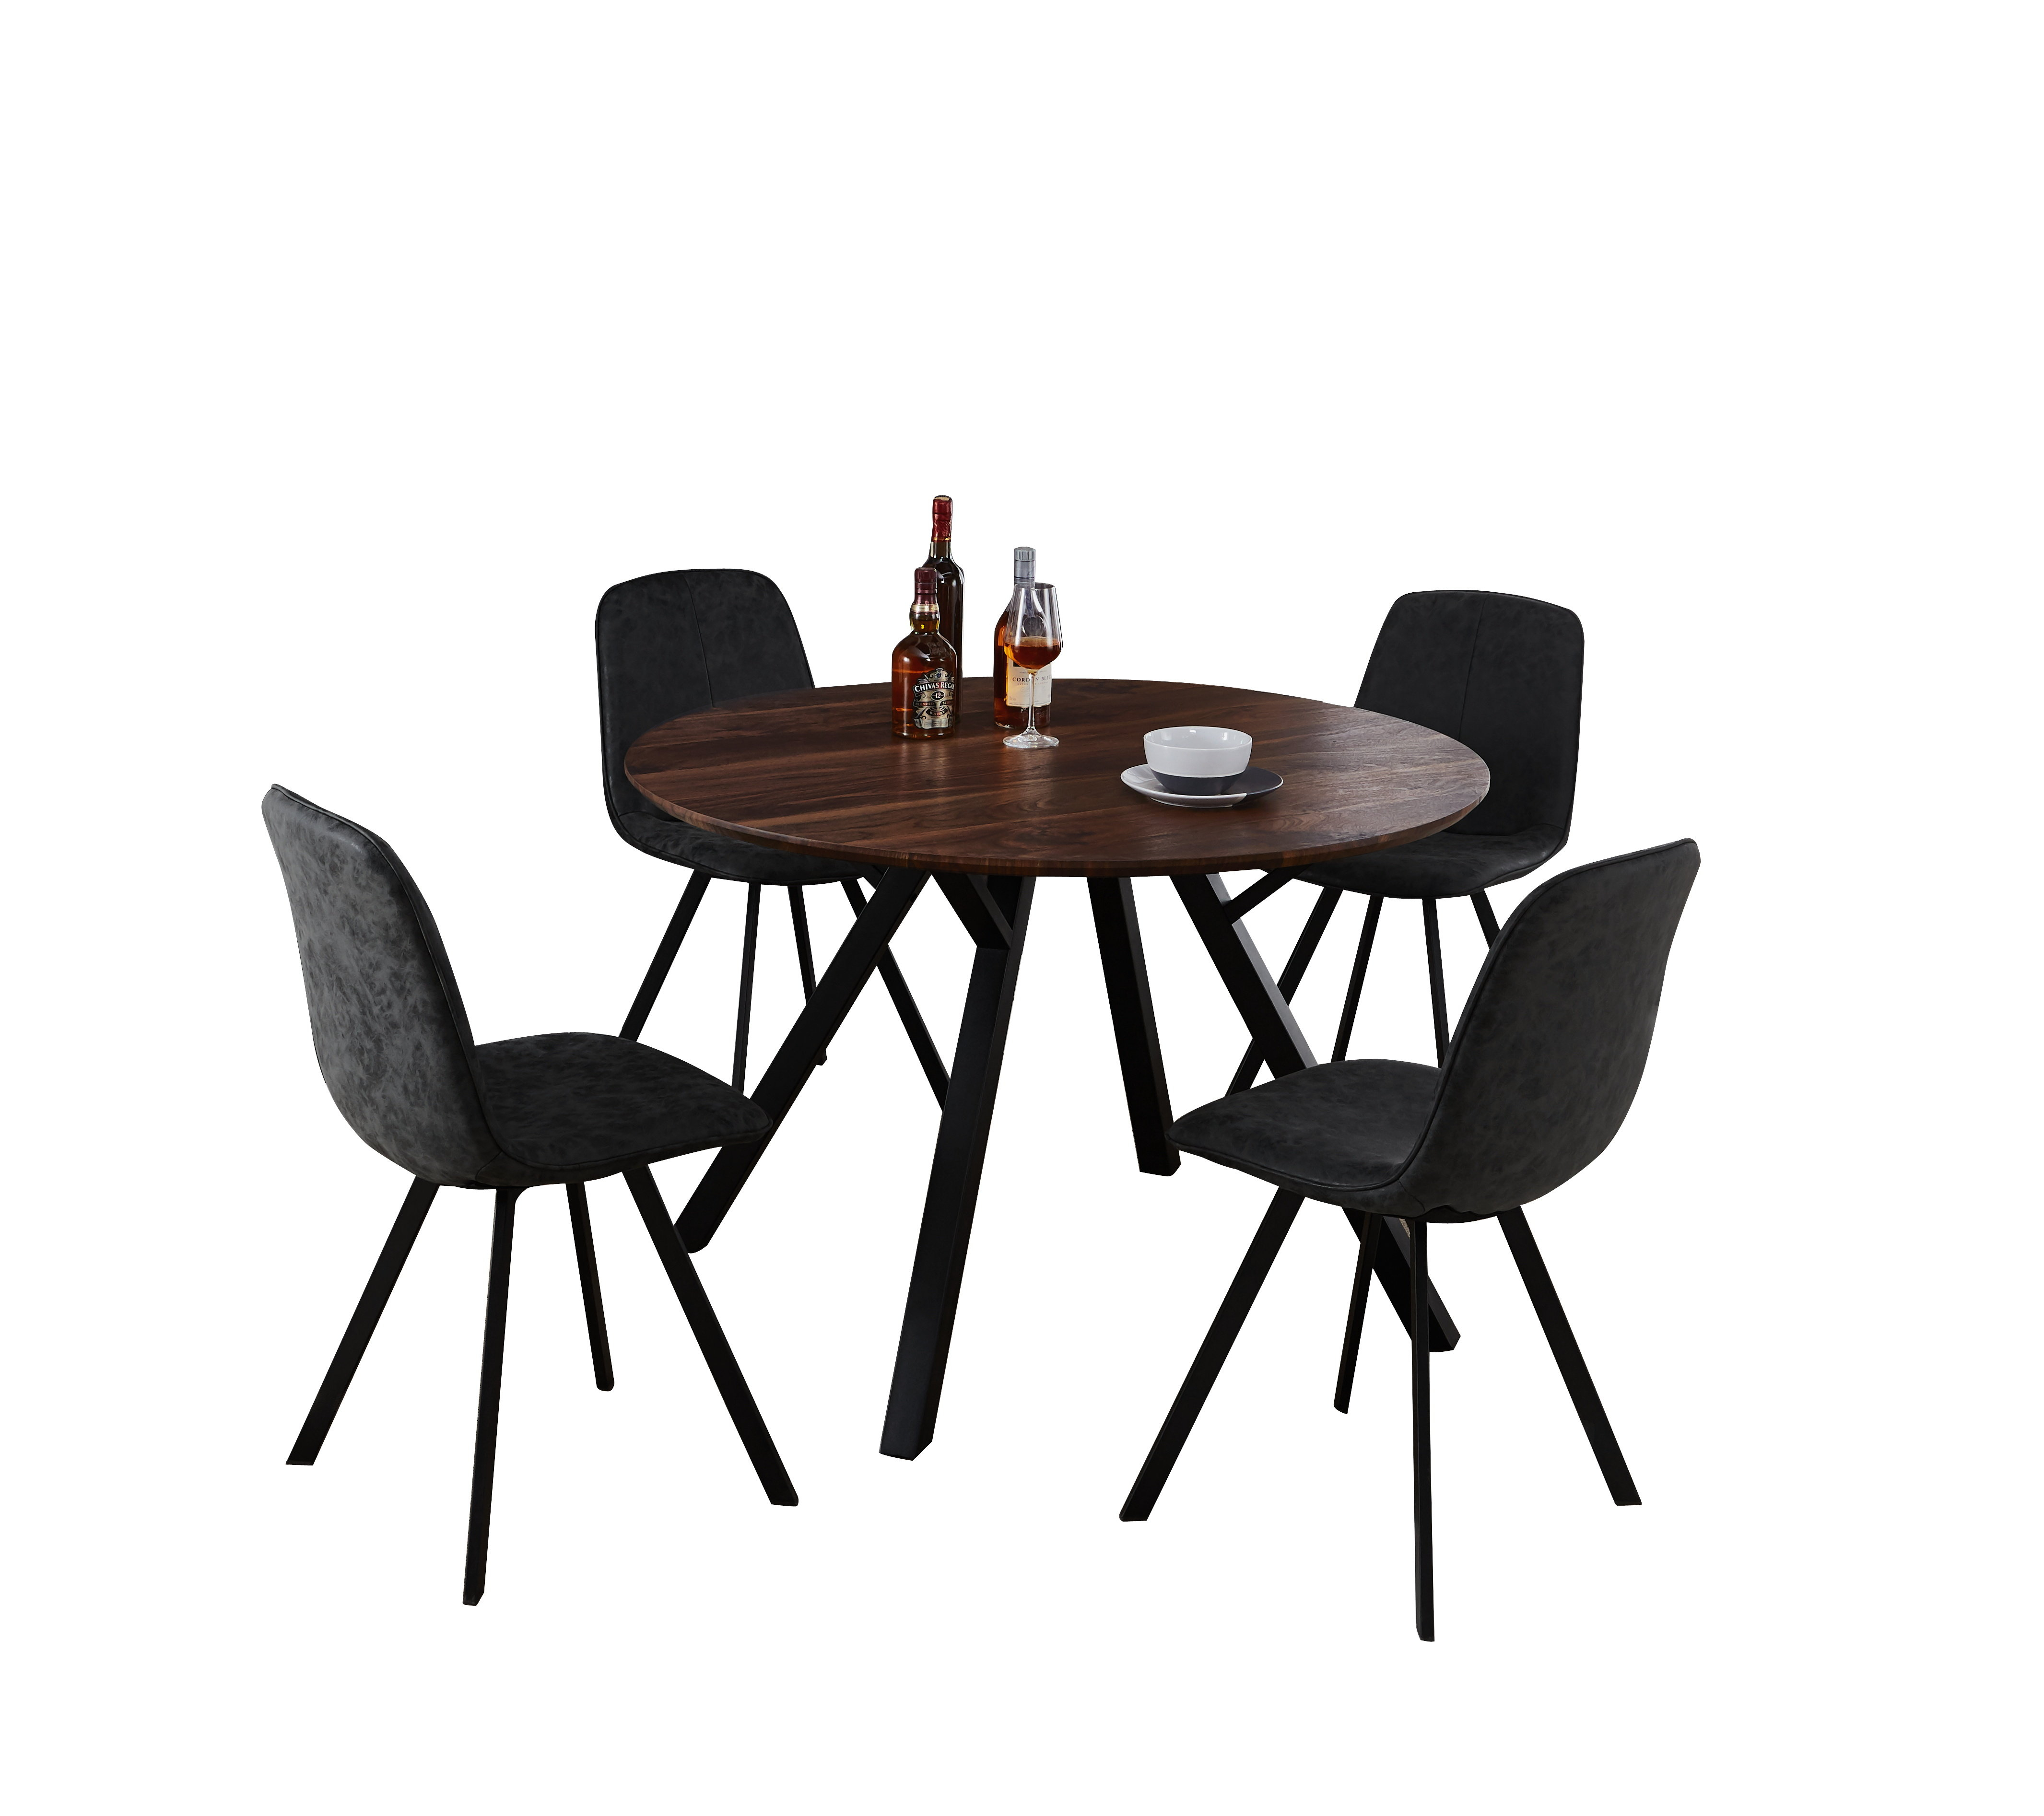 Malmo Design Round Table 5 Piece Solid Wood Dining Set Pertaining To Most Recently Released Liles 5 Piece Breakfast Nook Dining Sets (View 6 of 20)